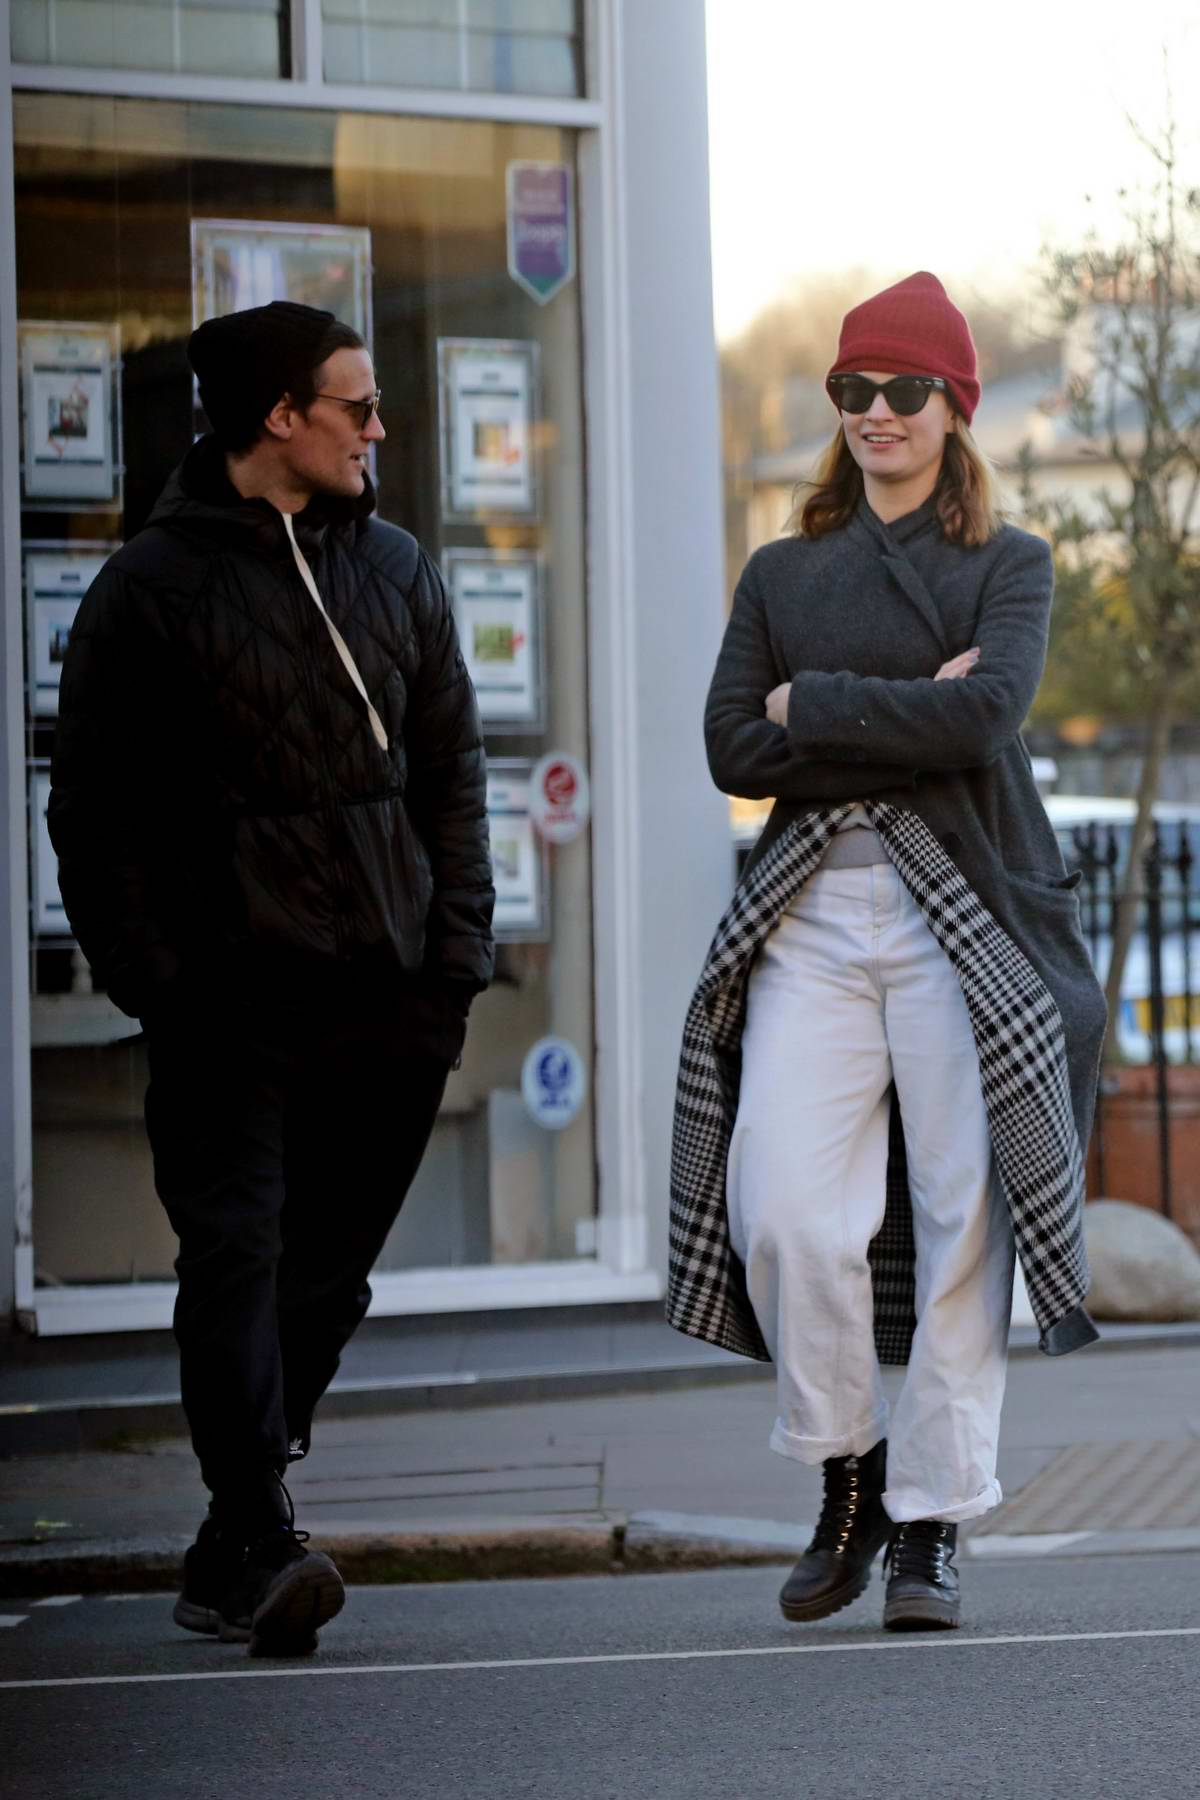 Lily James and Matt Smith seen together for the first time in 2020 as they strolled in London, UK